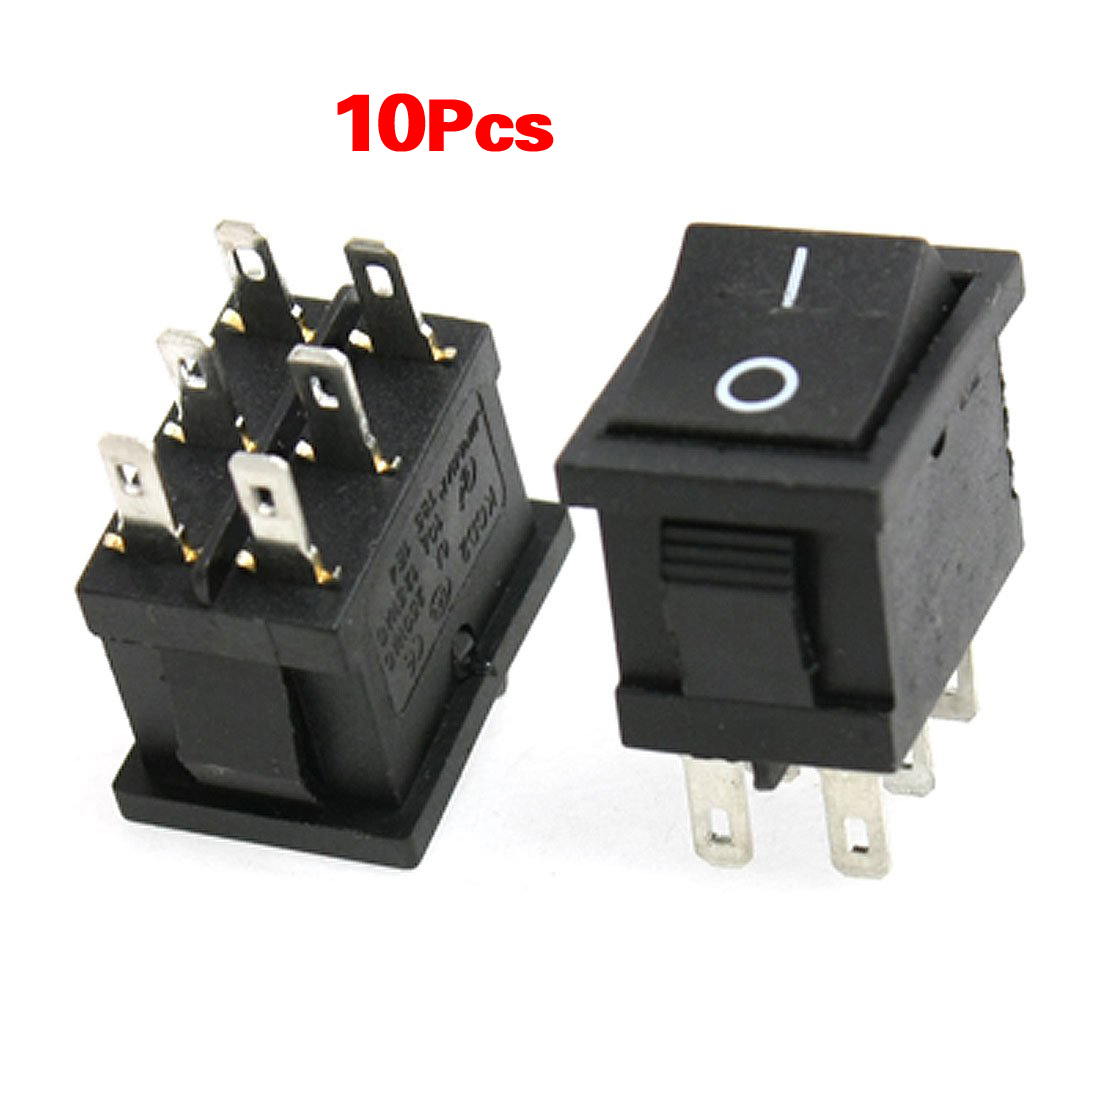 Promotion! 10pcs AC 6A/250V 10A/125V 6 Pin DPDT ON/ON 2 Position Snap In Boat Rocker Switch 10pcs lot ac 6a 250v 10a 125v red light 3 pin on off spst snap in boat rocker switch g205m best quality